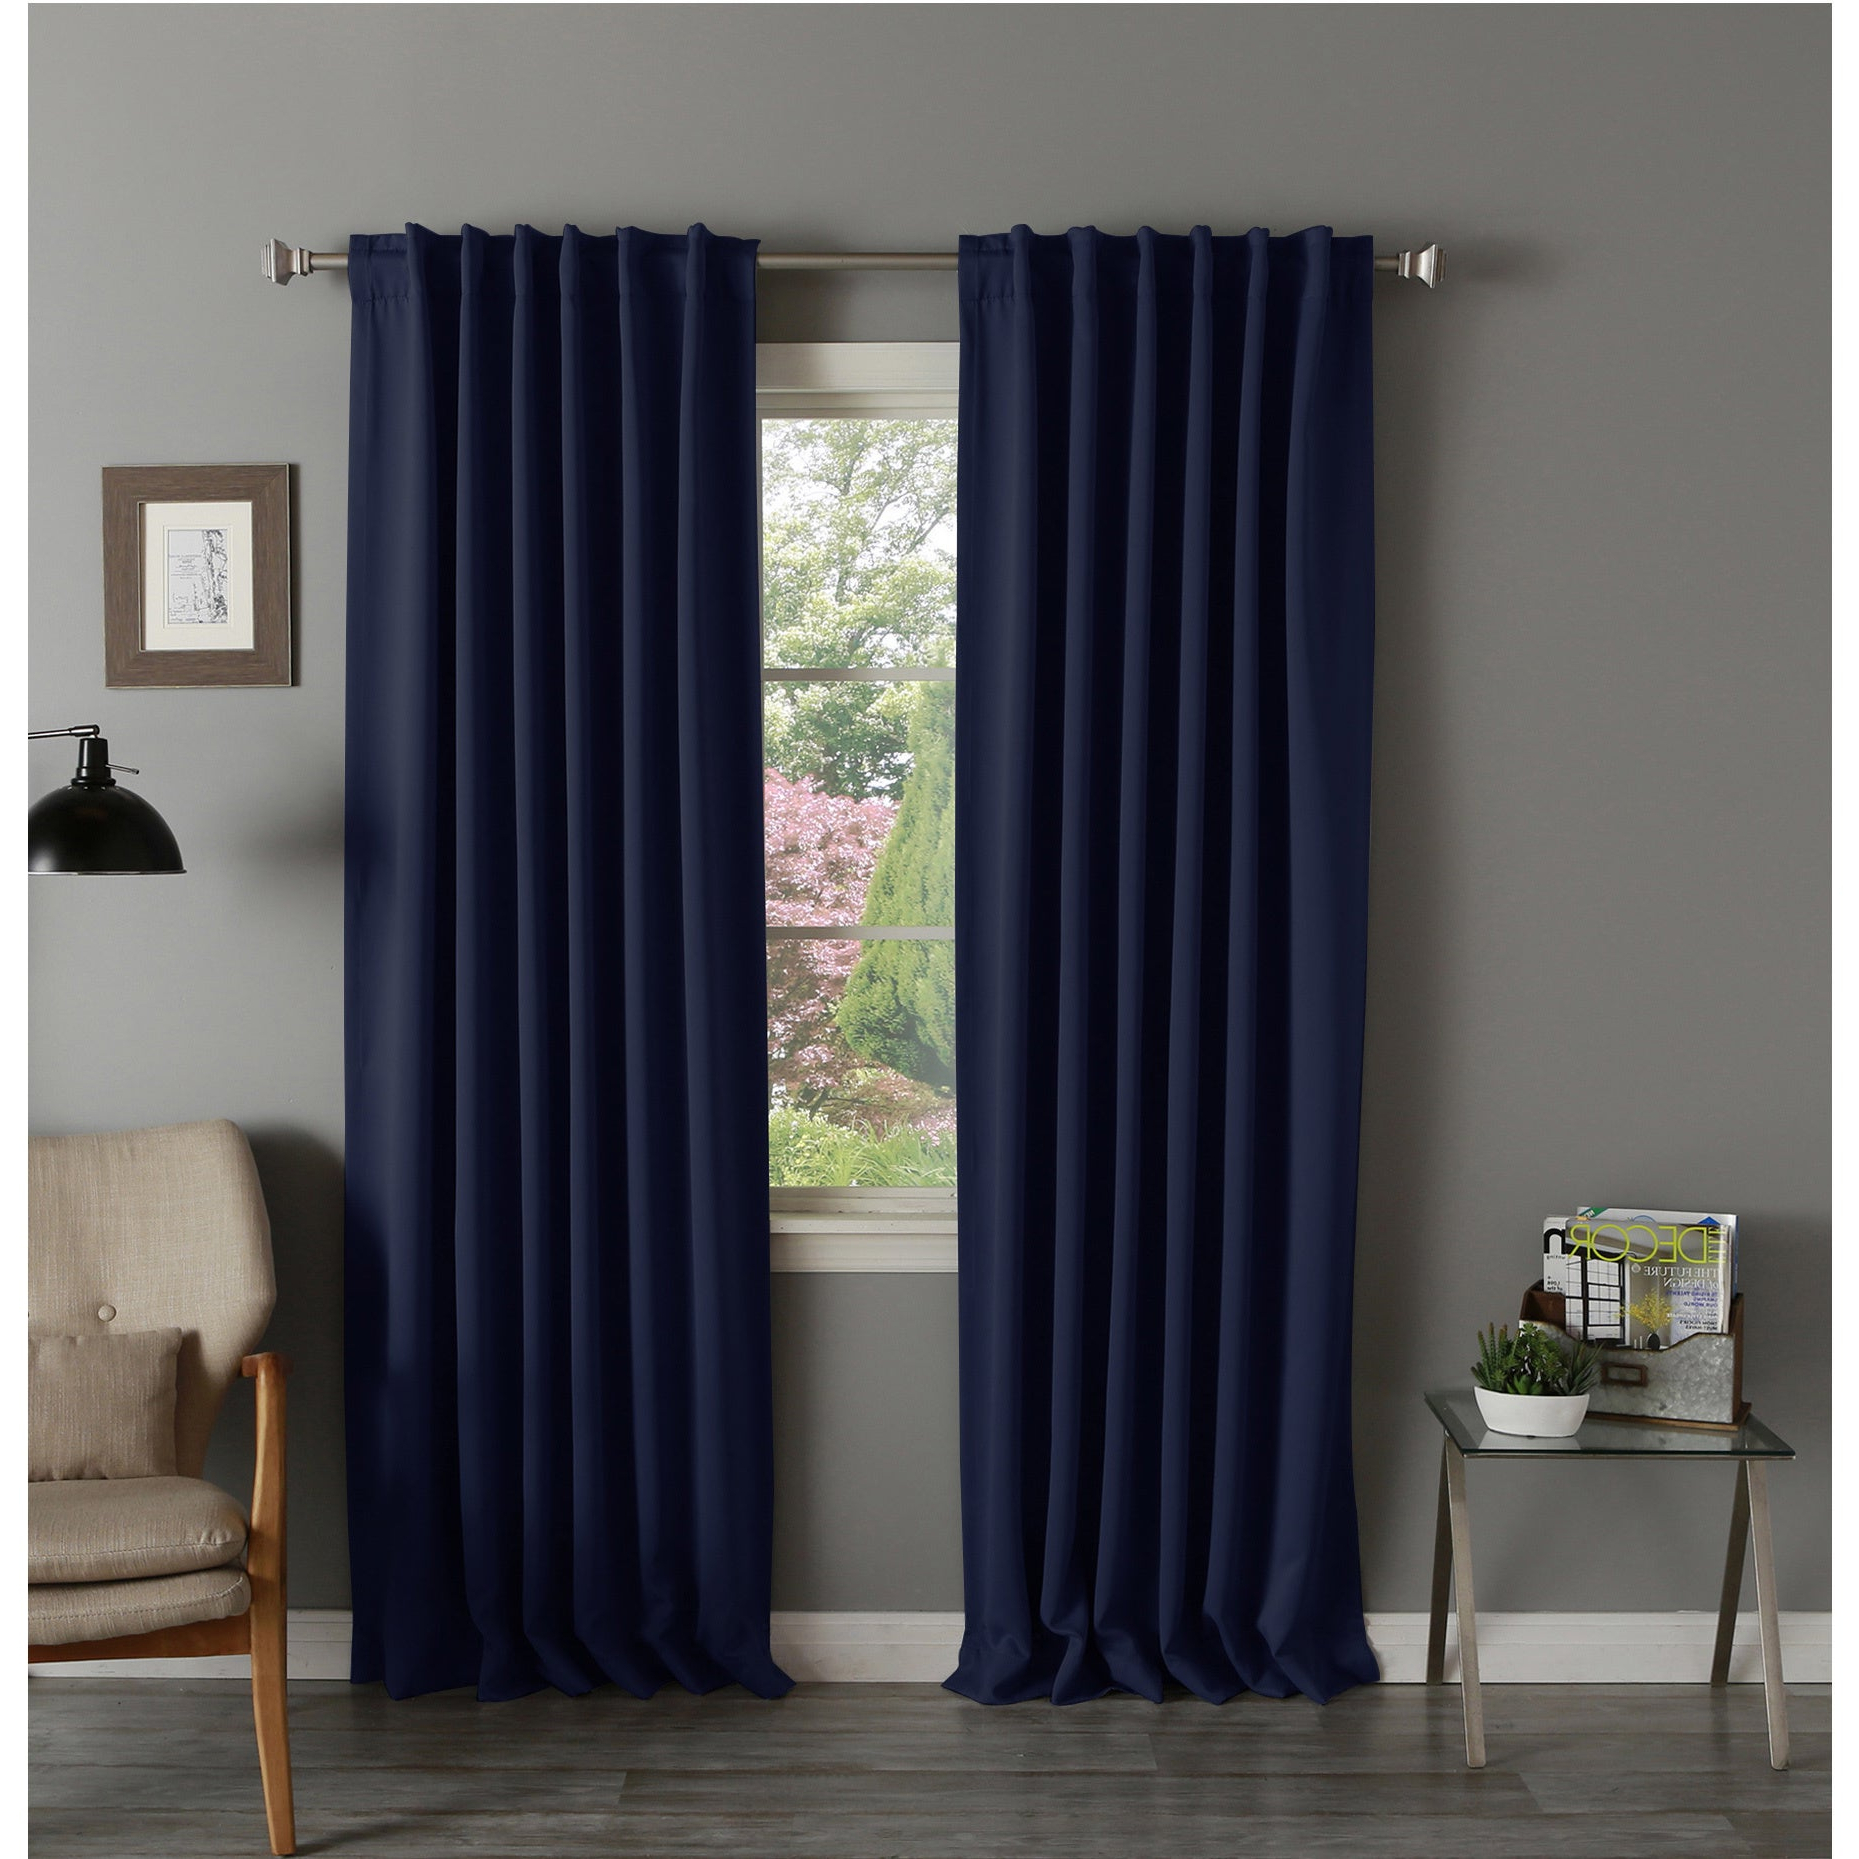 Most Up To Date Thermal Rod Pocket Blackout Curtain Panel Pairs With Aurora Home Thermal Rod Pocket 96 Inch Blackout Curtain Panel Pair – 52 X  (View 8 of 20)